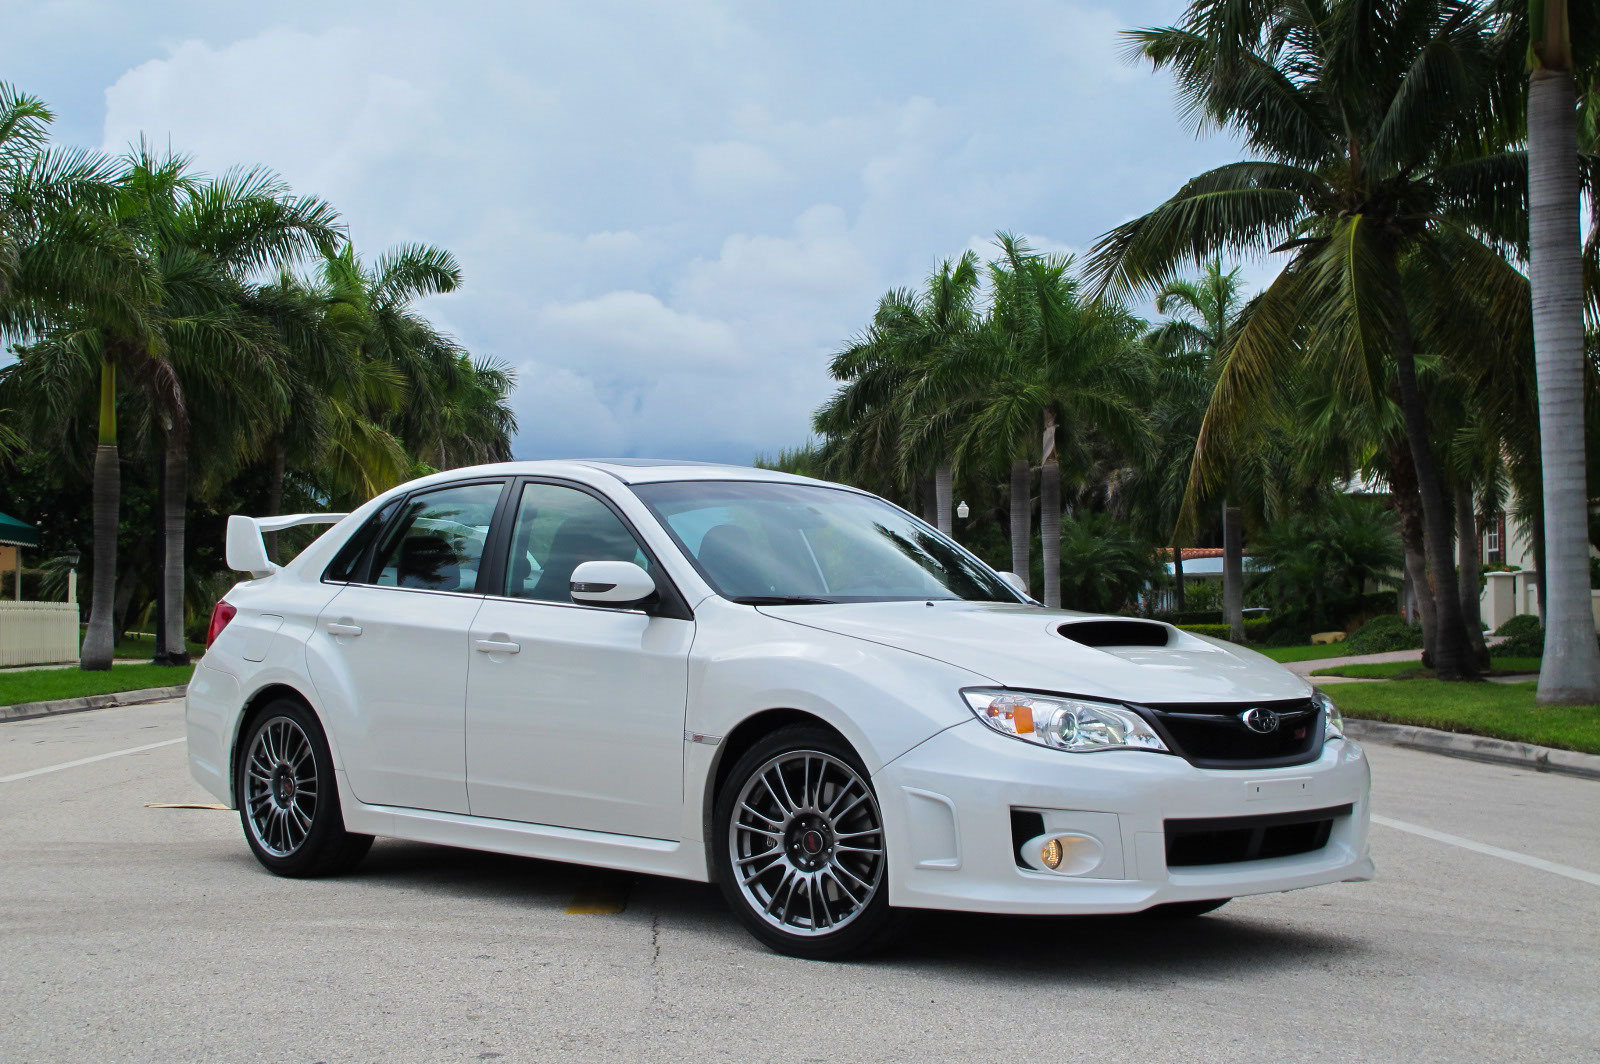 2014 subaru impreza wrx sti picture 520111 car review top speed. Black Bedroom Furniture Sets. Home Design Ideas